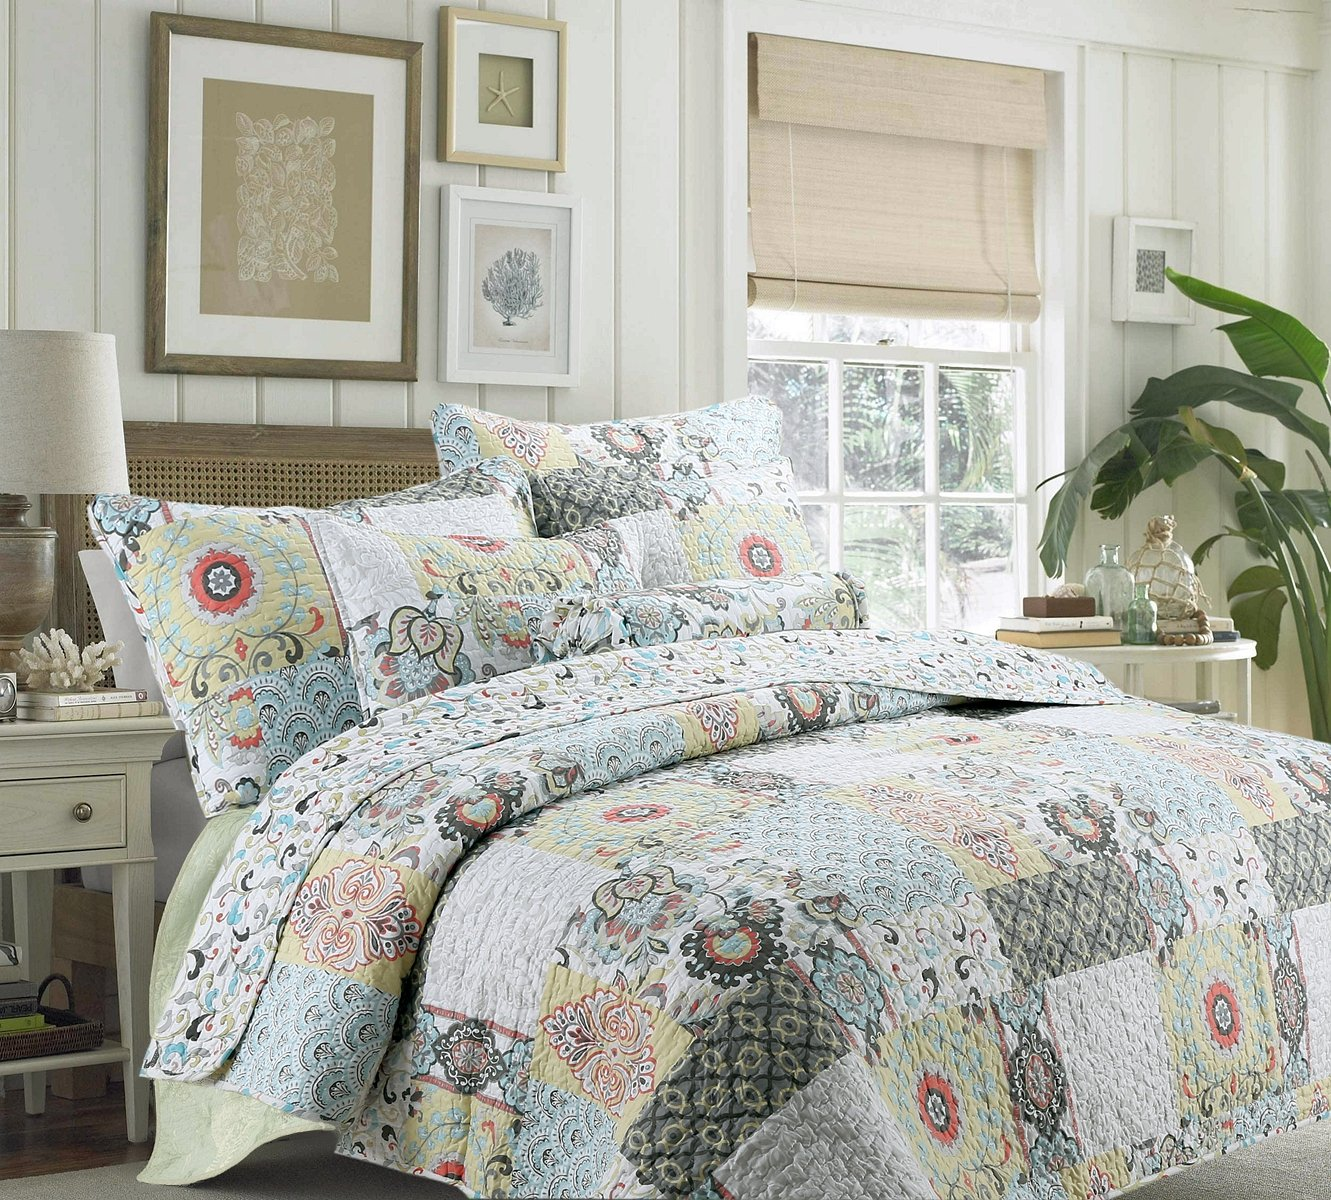 Cozy Line Home Fashions Moorea Coral Turquoise Yellow Grey Flower Print Patchwork 3-piece Bedding Quilt Set, Reversible Coverlet, Bedspread, Gift for women. (Full/Queen Set)